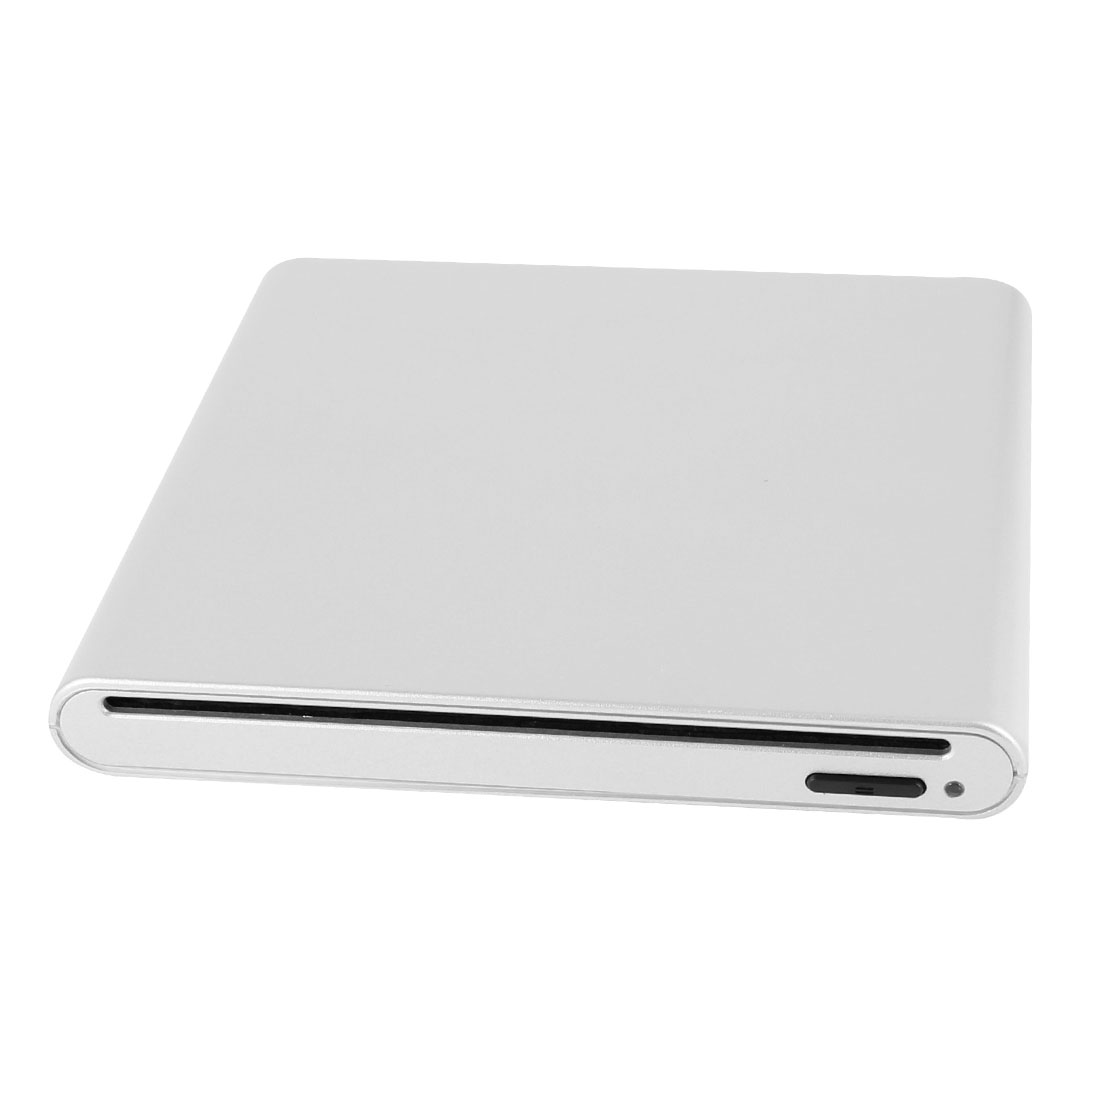 Portable Laptop External USB 2.0 Slot-in 24x CD 8x DVD RW Burner Drive